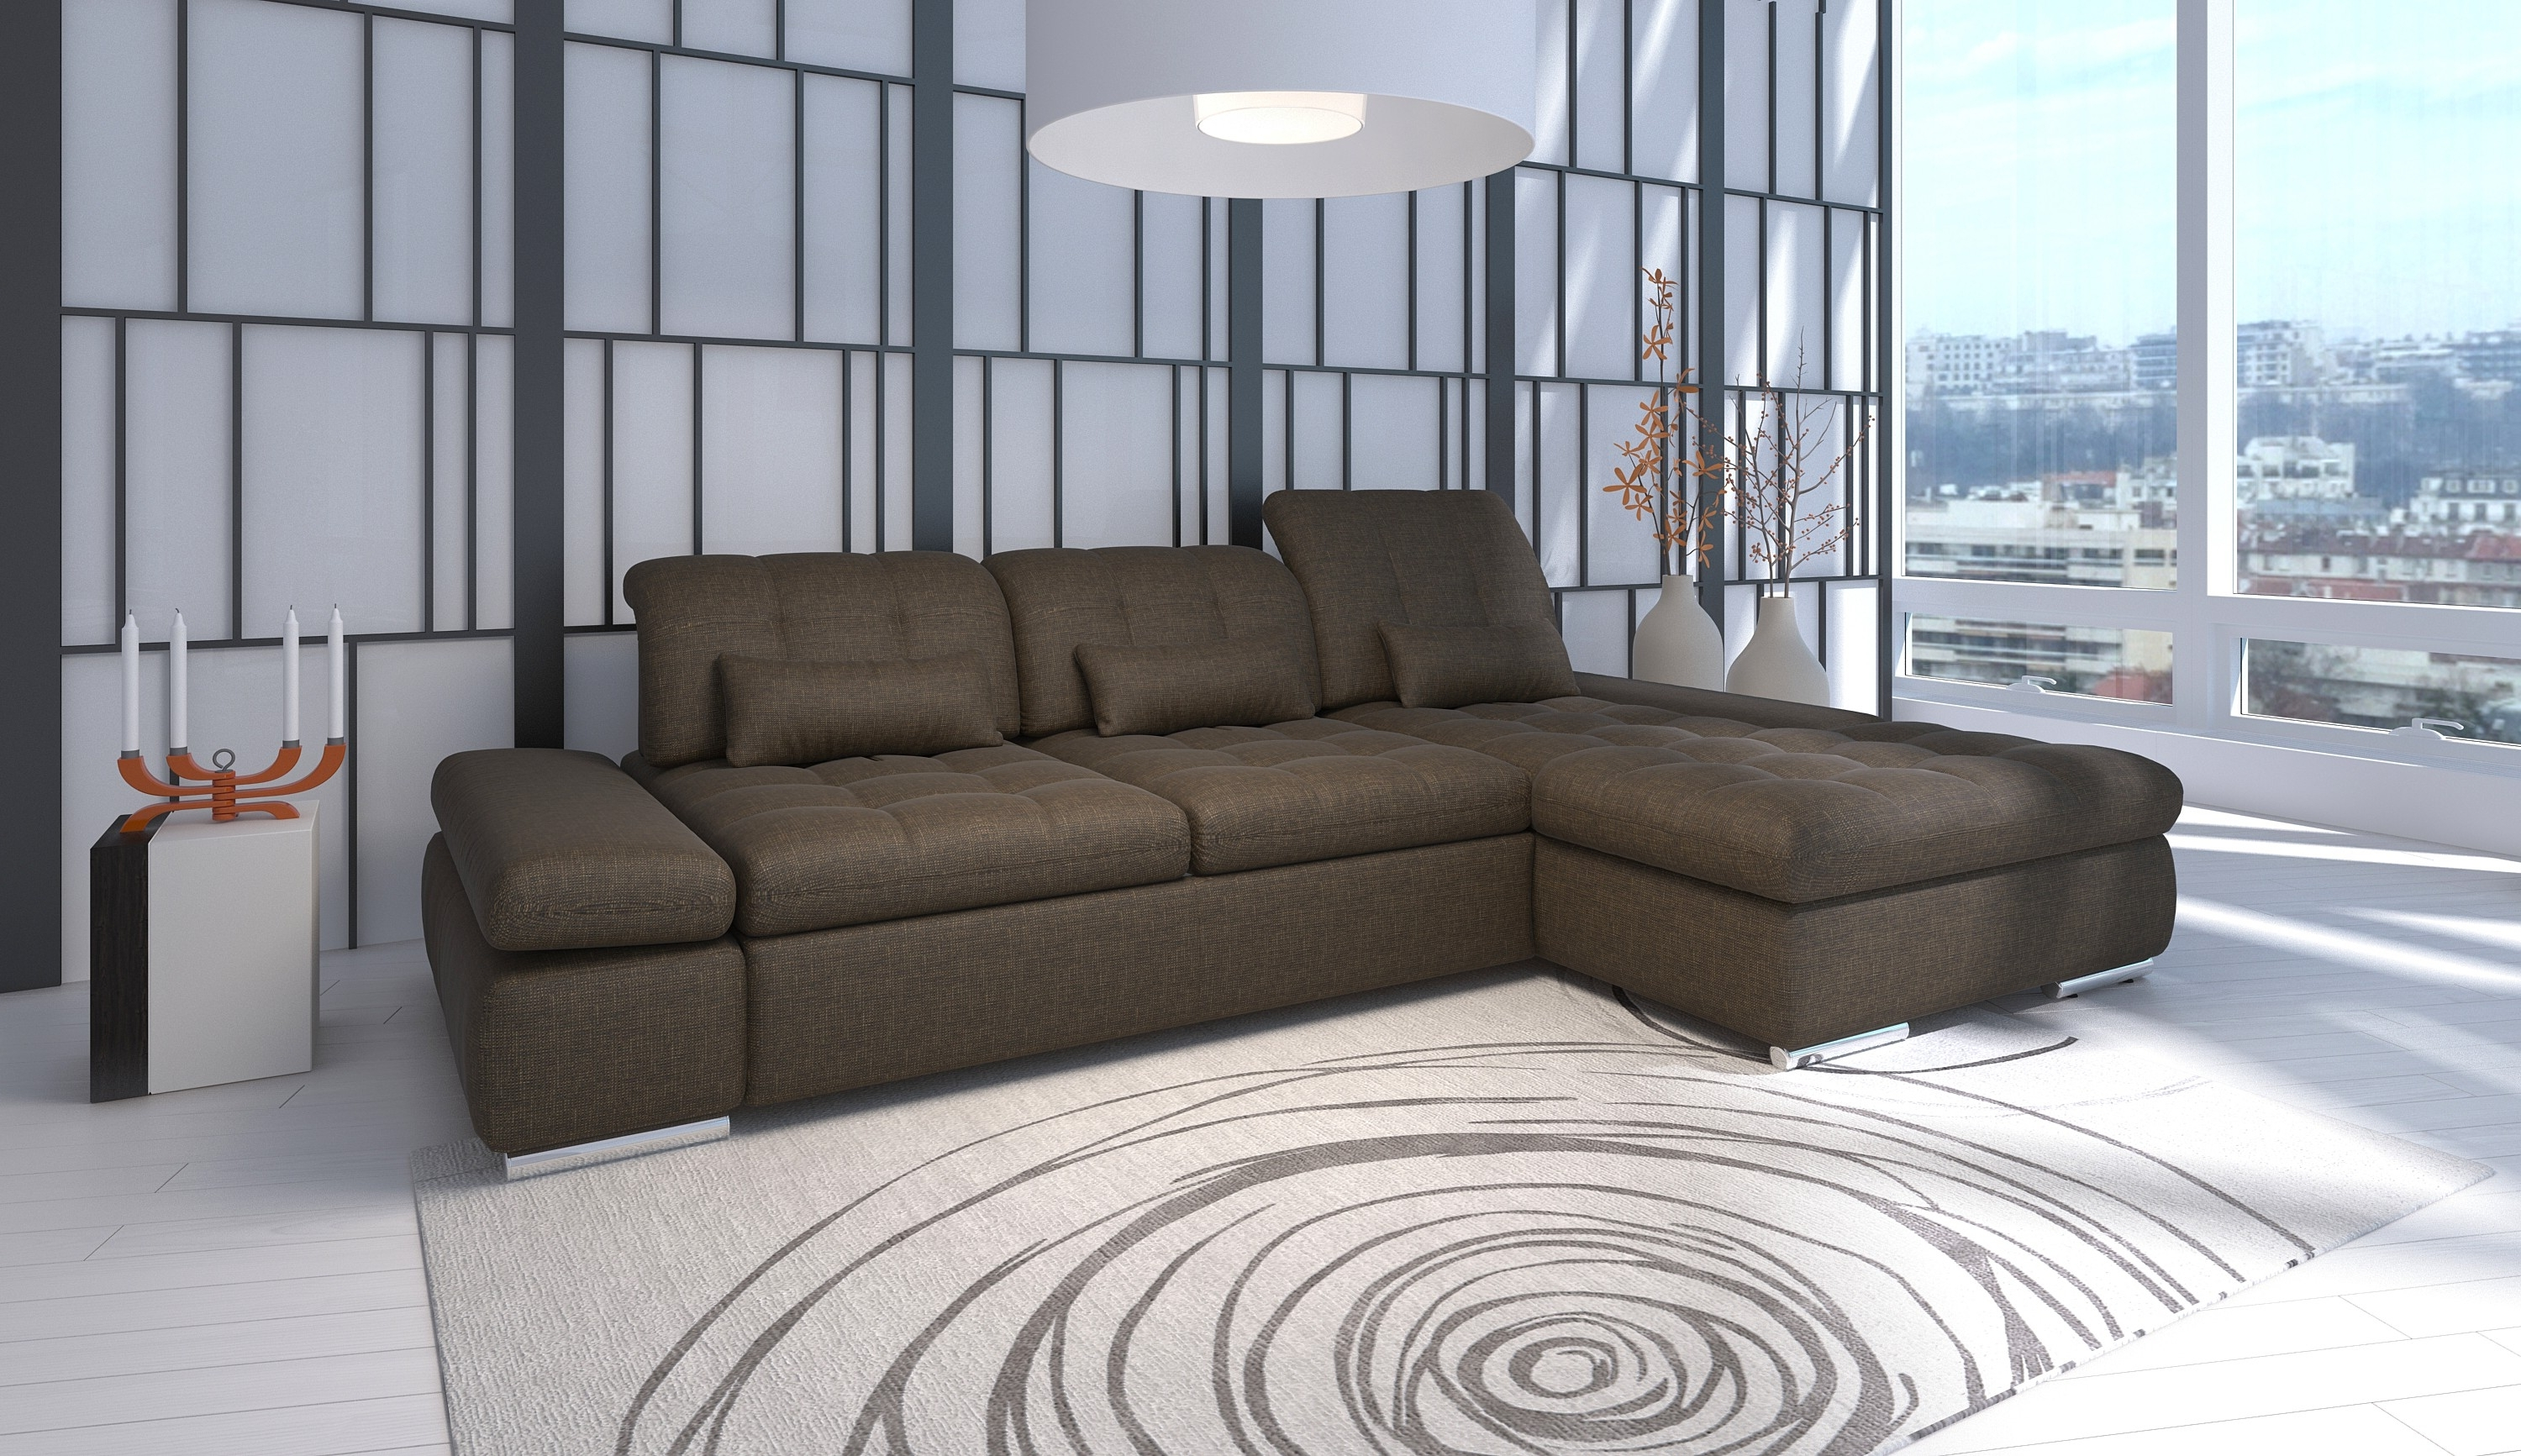 Most Recent Trinidad And Tobago Sectional Sofas In Alpine Sectional Sofa (View 5 of 20)